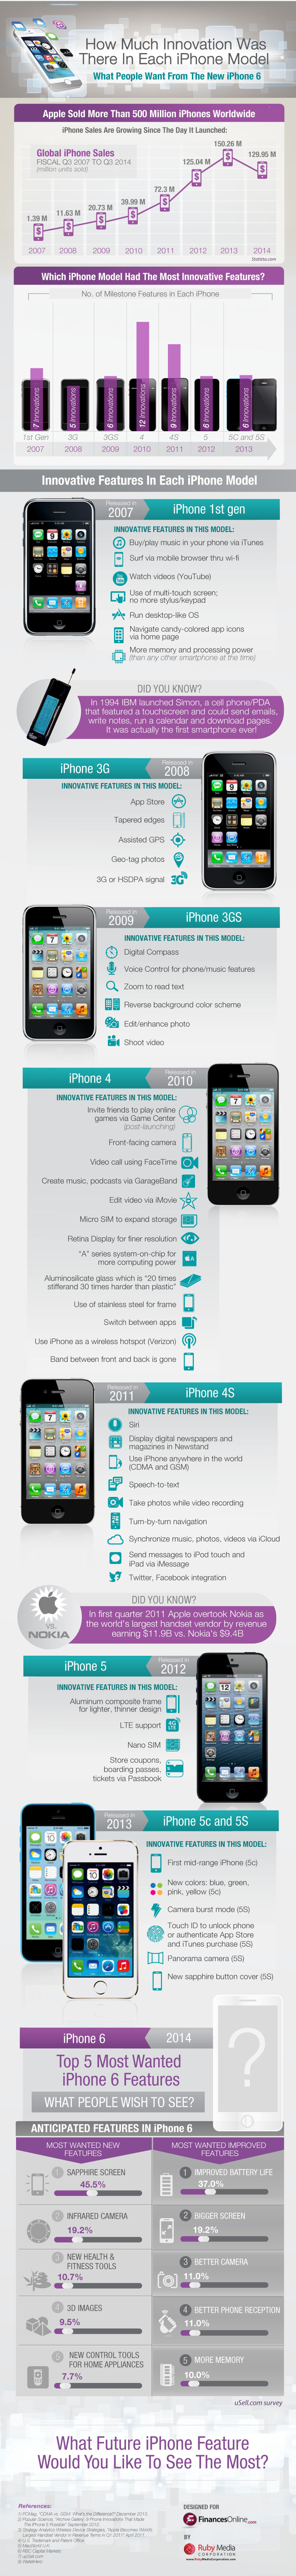 iPhone 6 Most Wanted Features